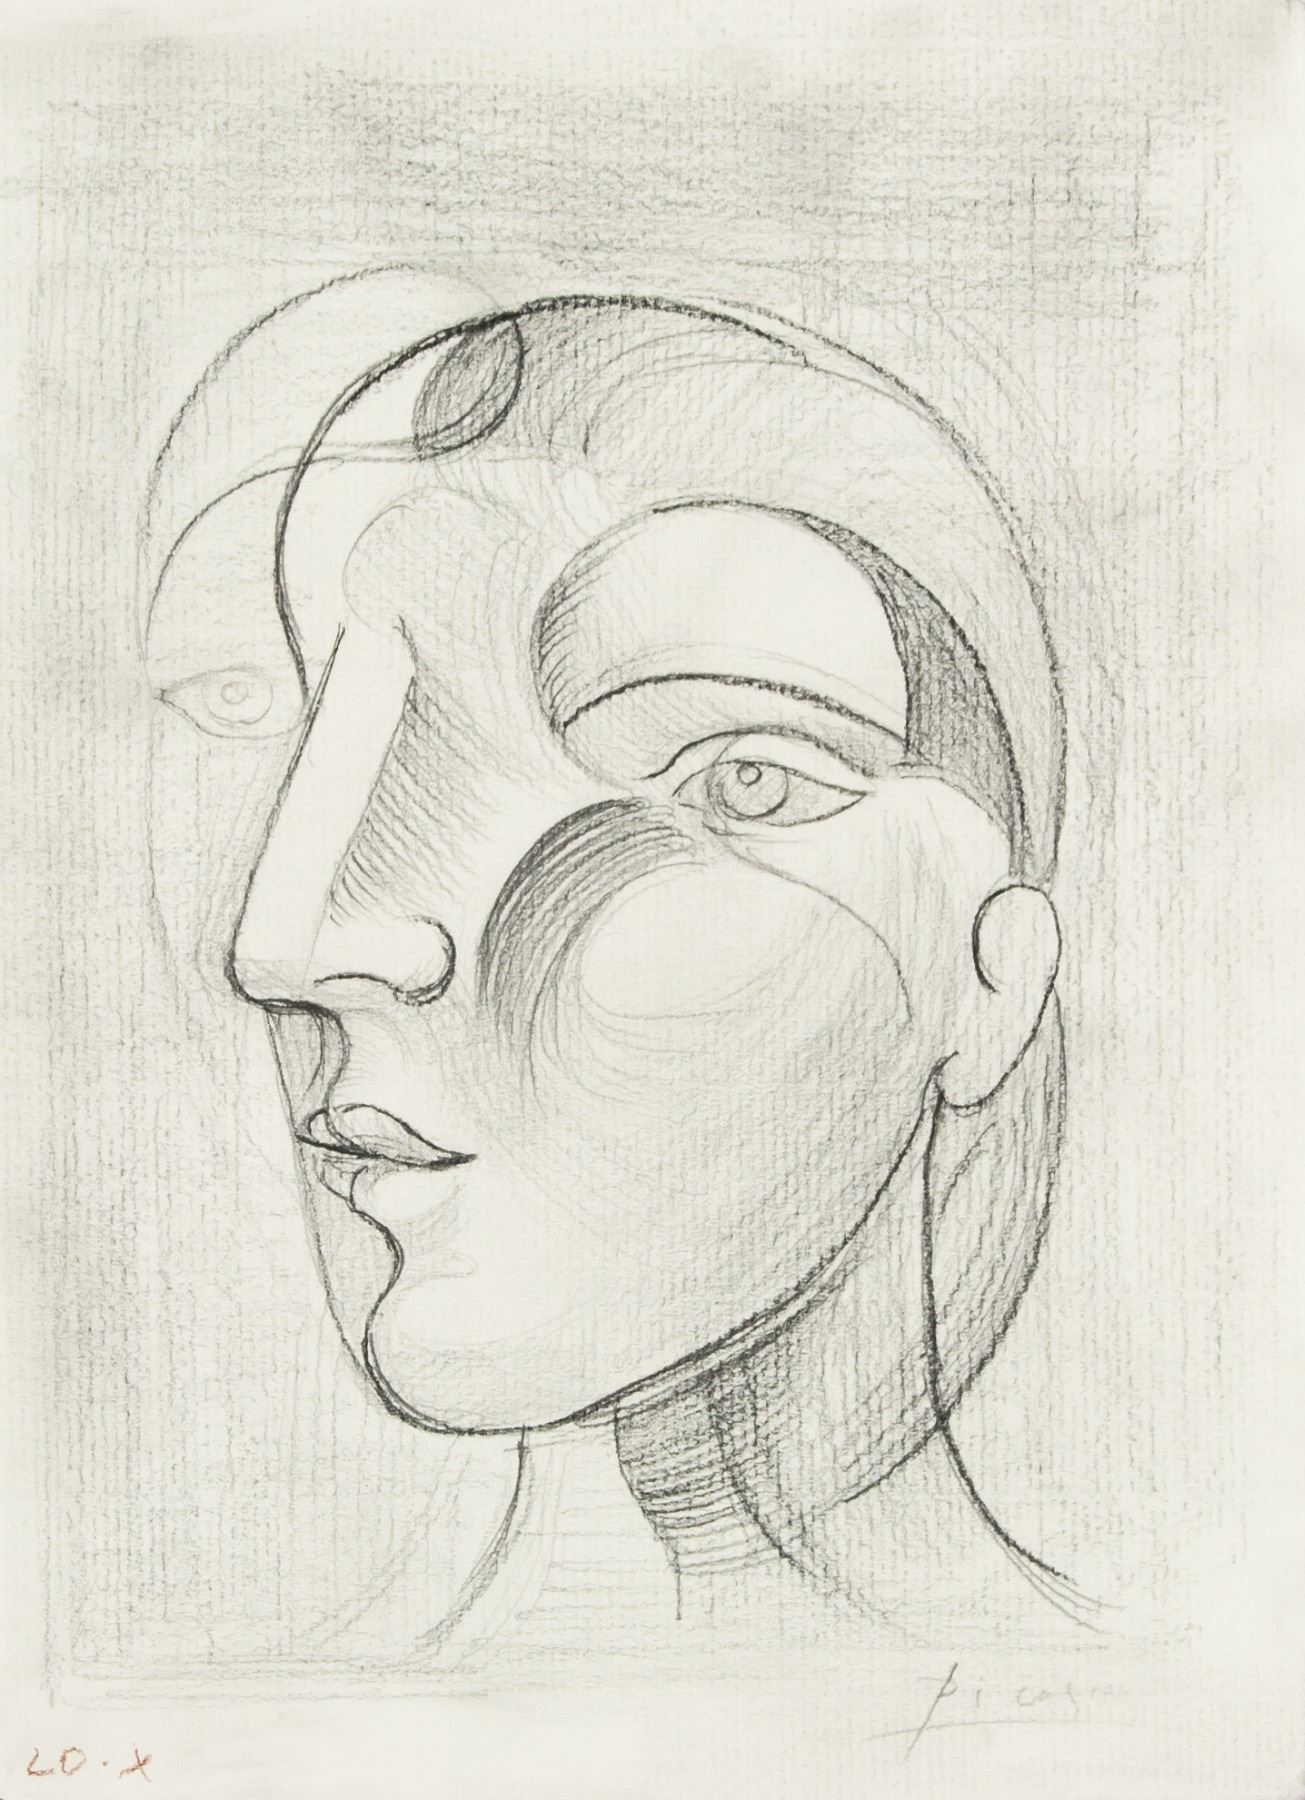 Picasso 1881 1973 sketch pencil on paper cubist